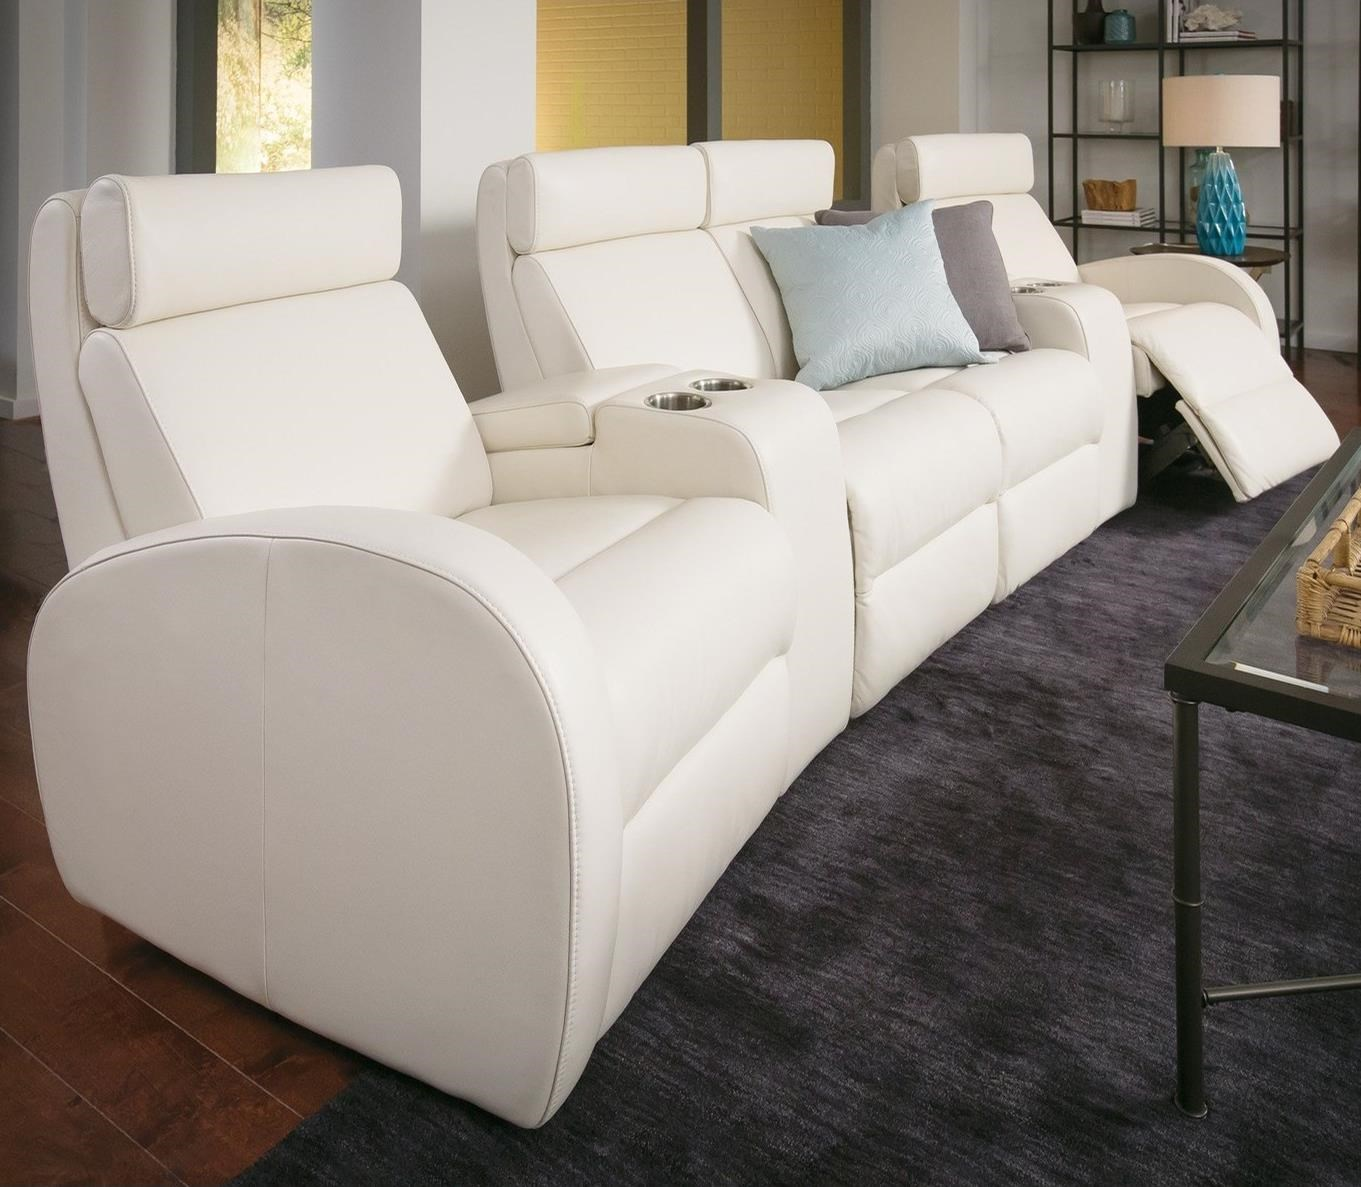 4-Seat Pwr Reclining Home Theater Set